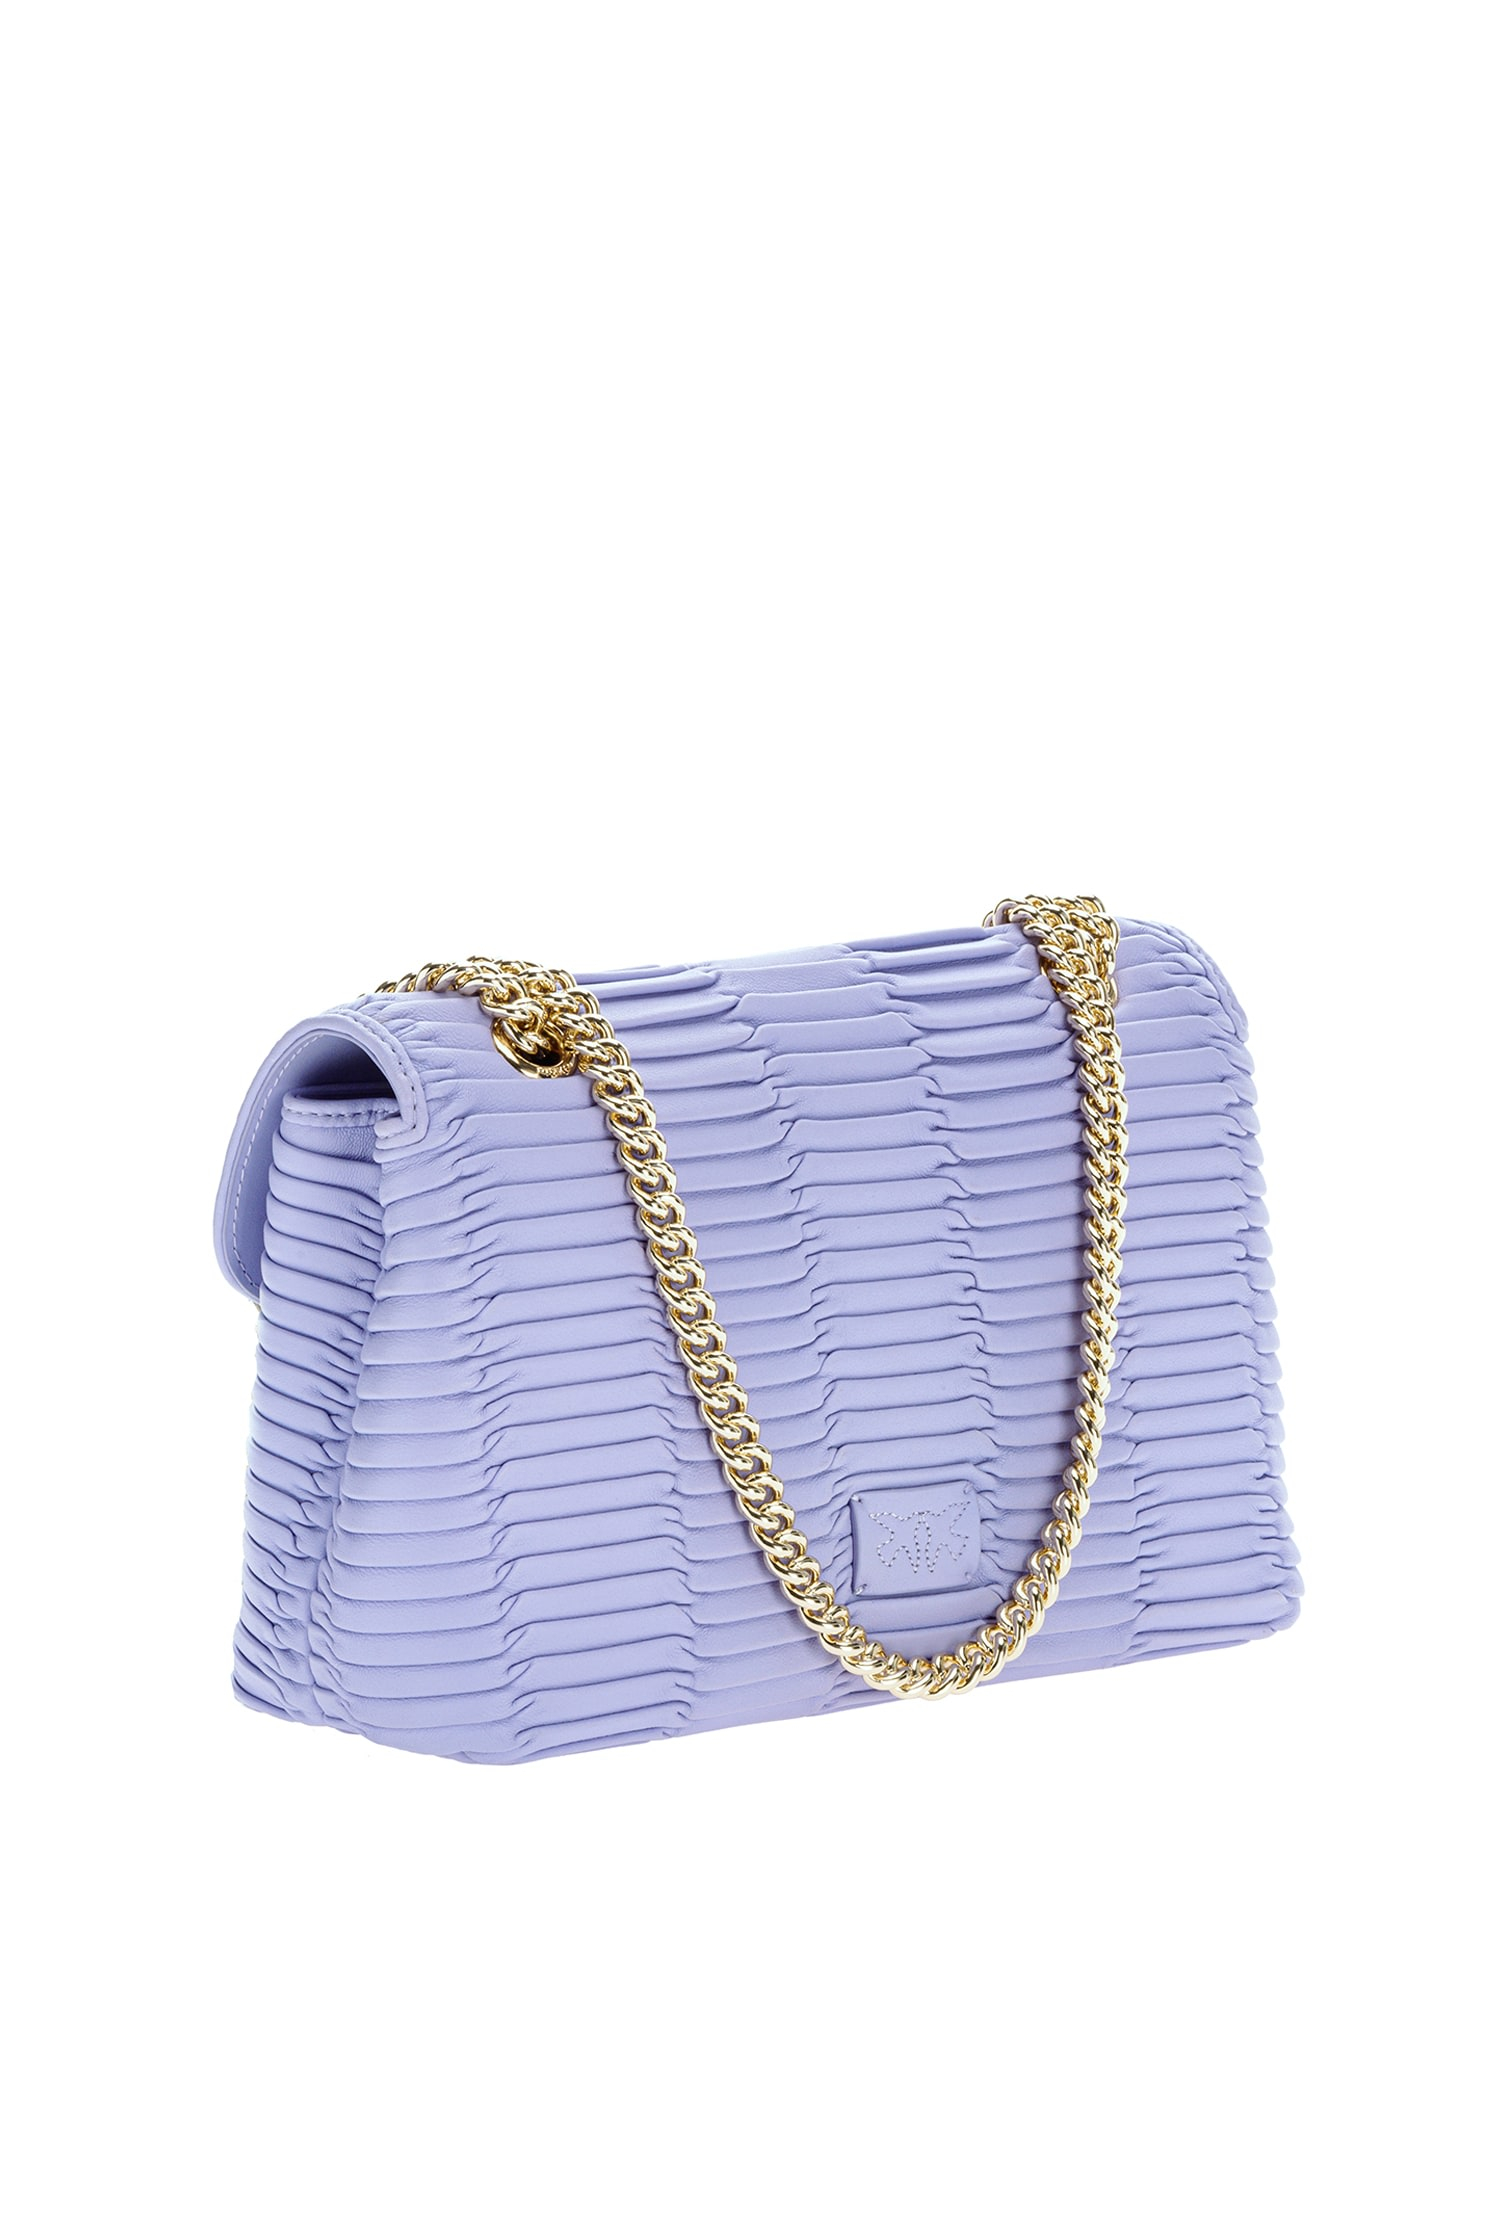 SHOPPING ON LINE PINKO CLASSIC LOVE BAG PUFF ORIGAMI NEW COLLECTION WOMEN'S SPRING SUMMER 2021